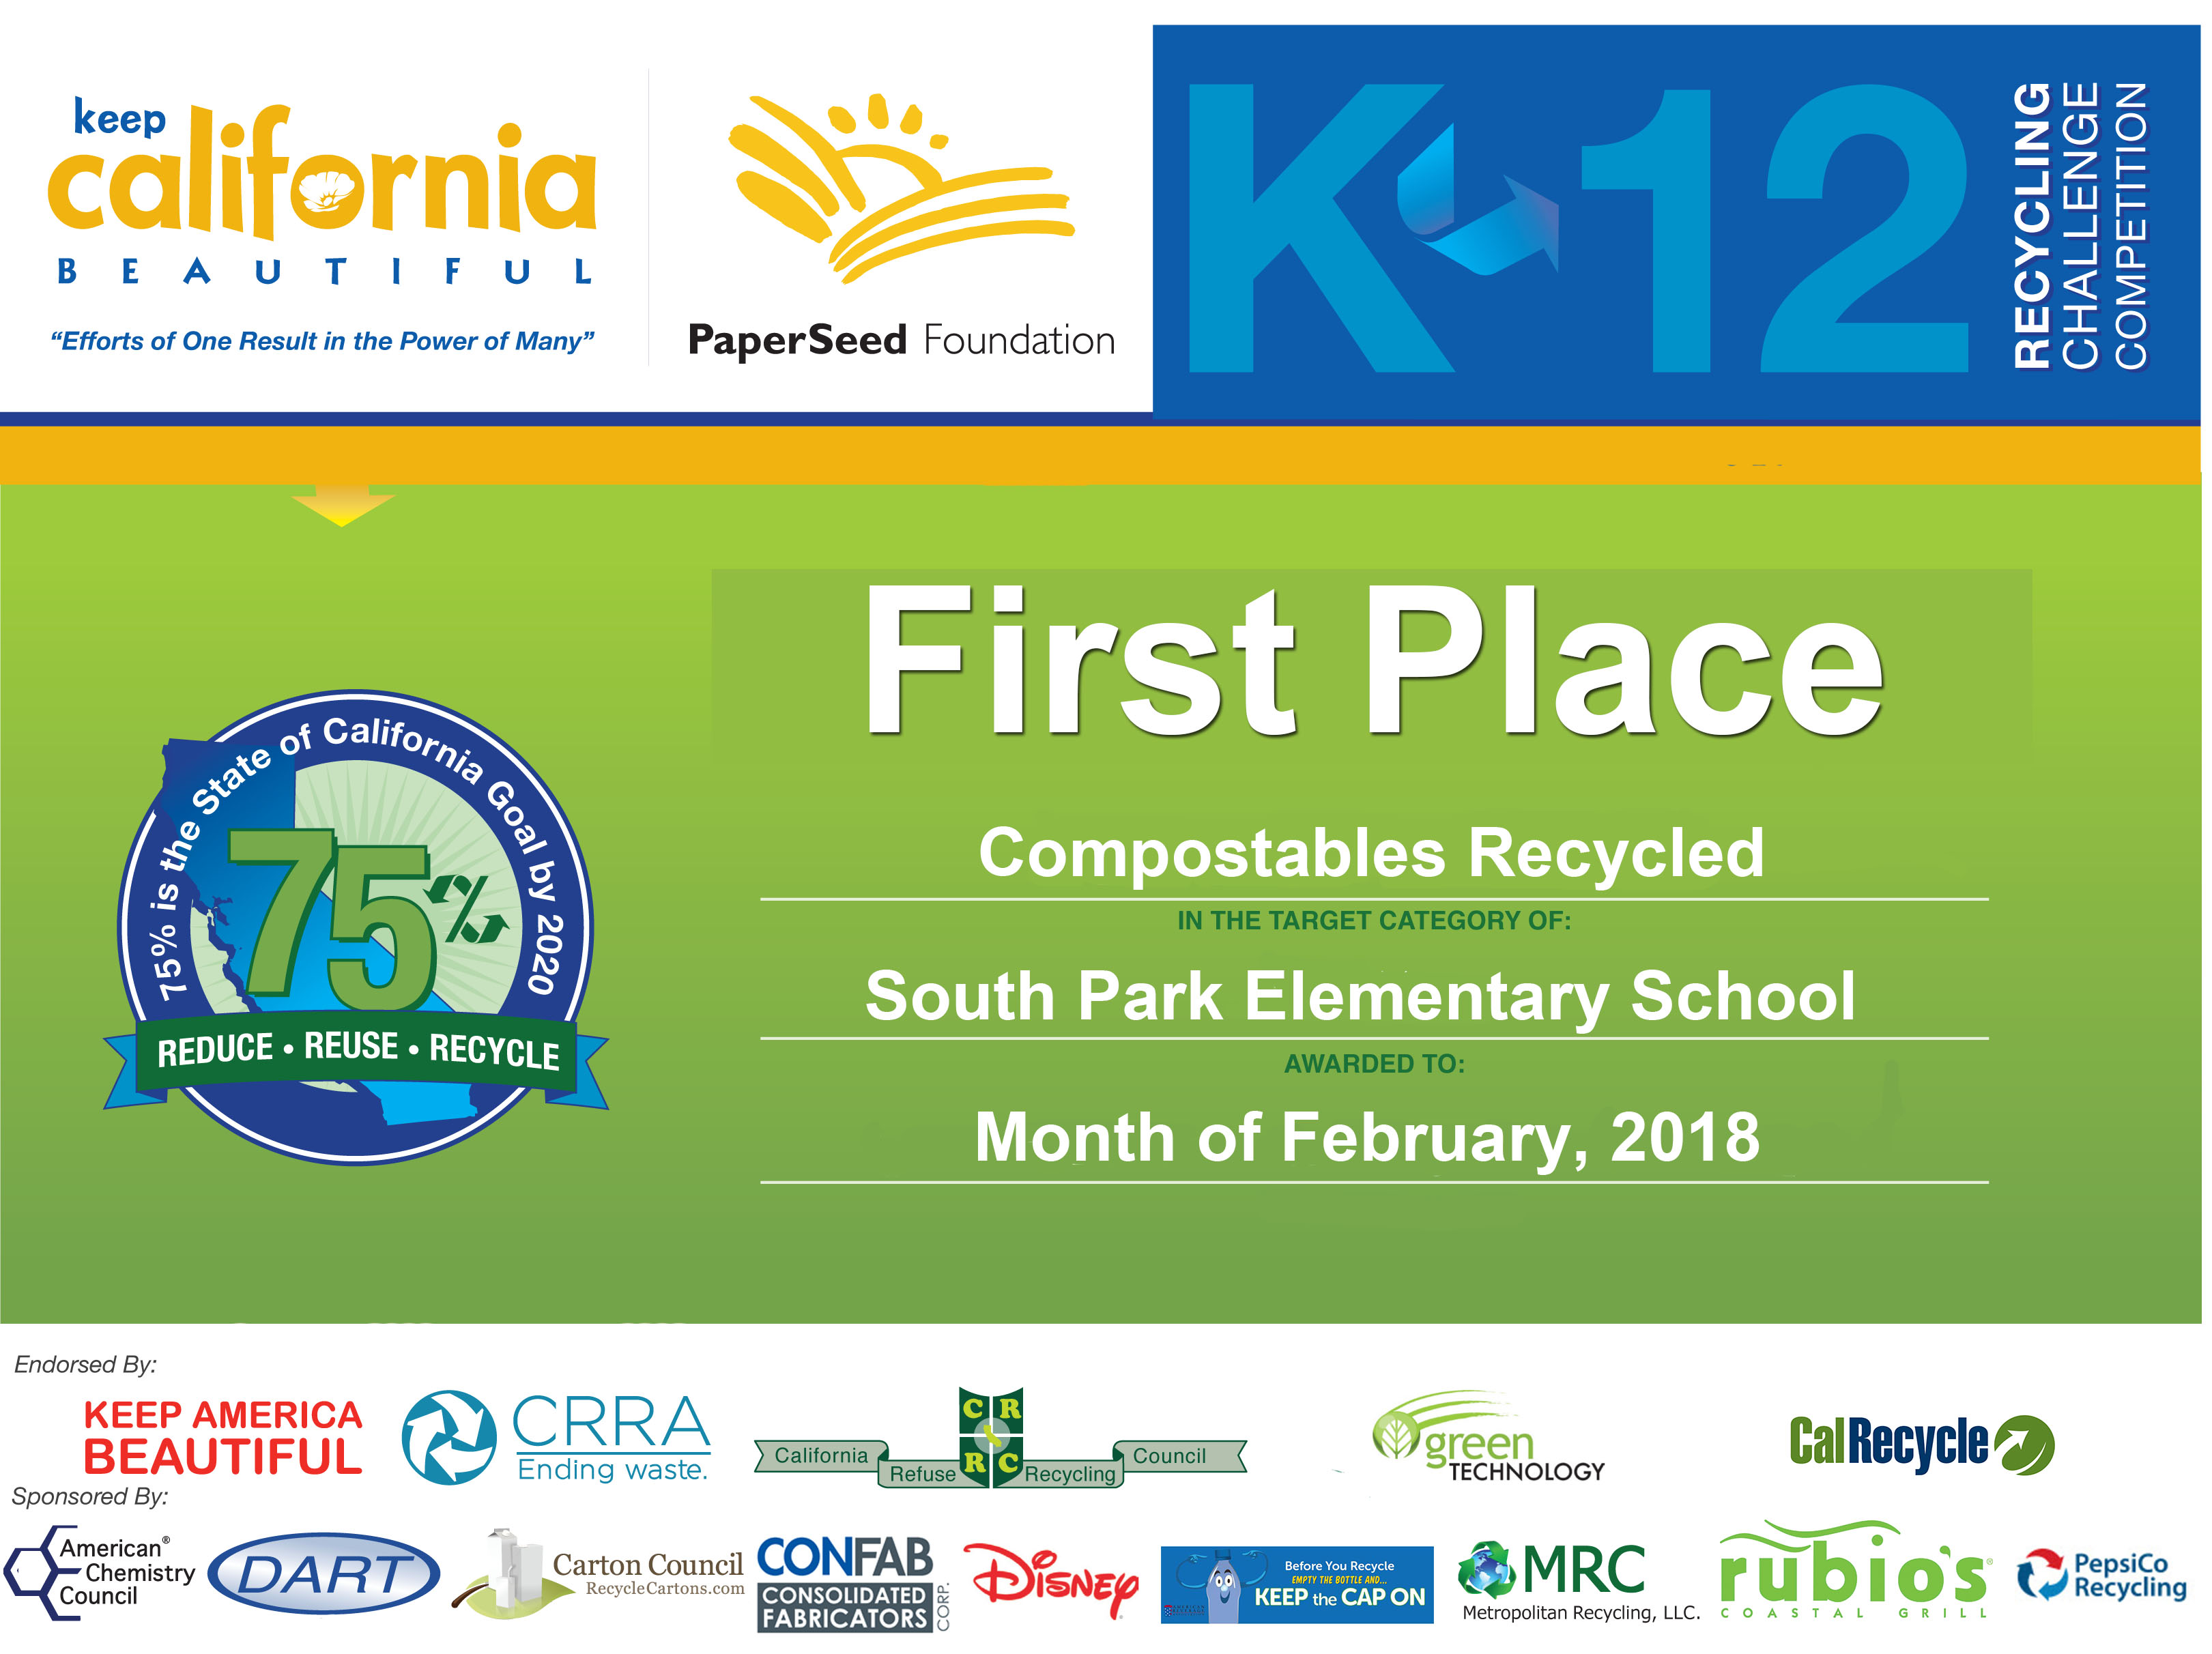 South Park Elementary School - Compostables Recycled2018-1st